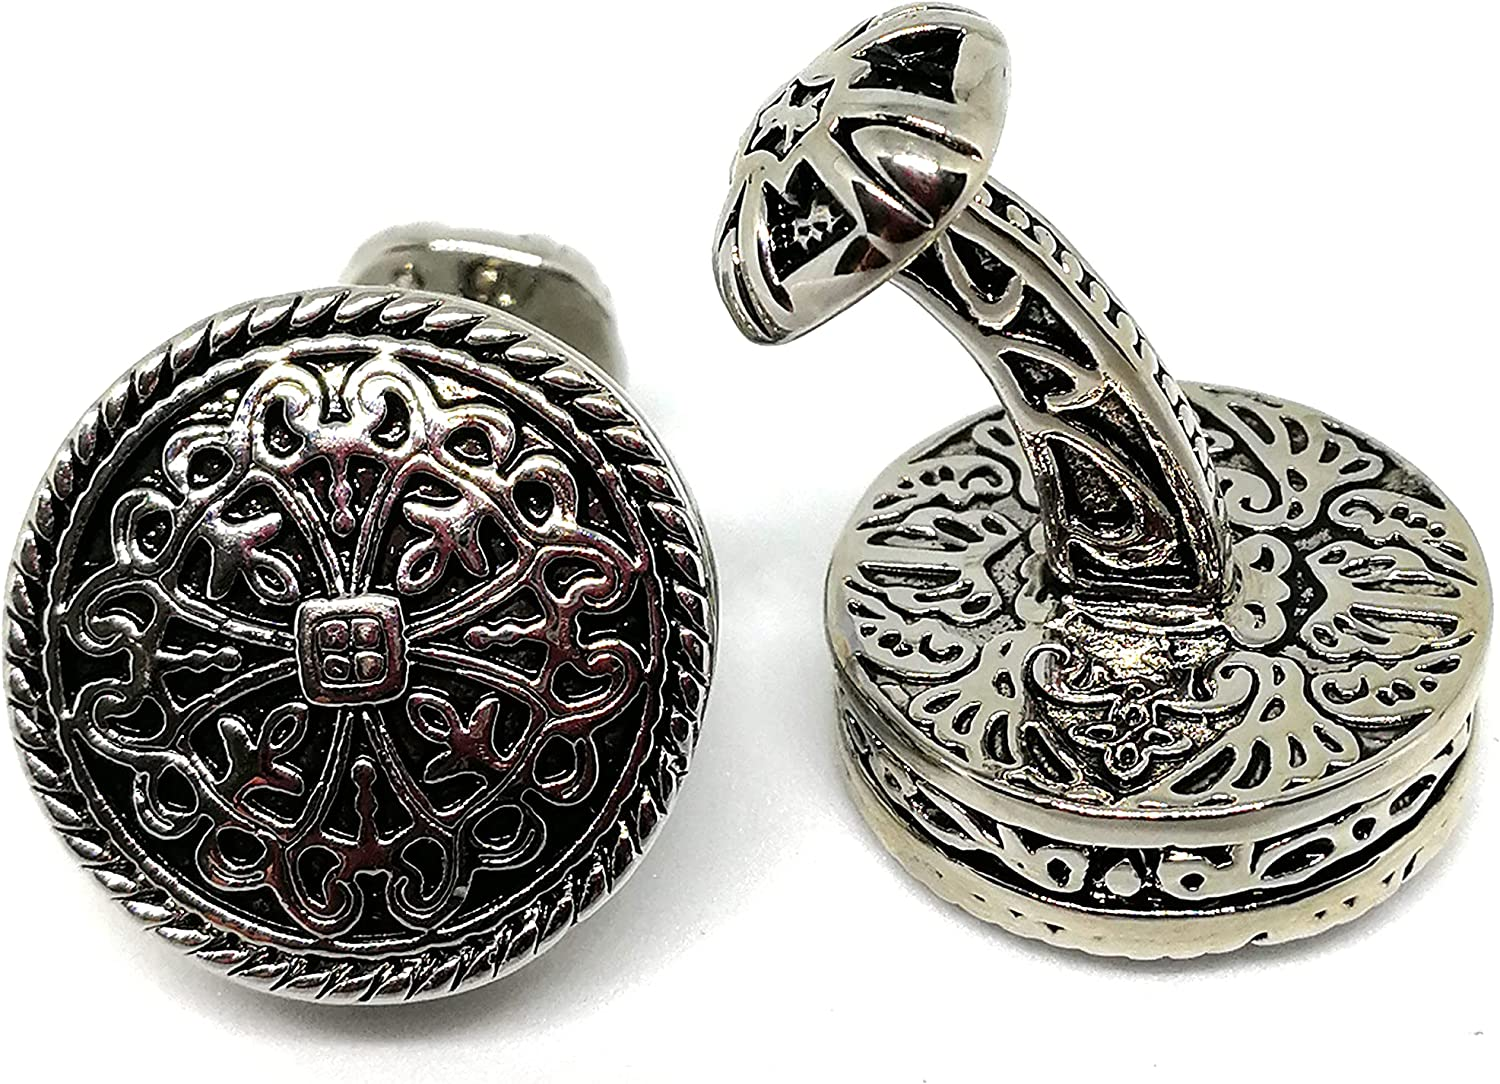 Cufflinks for Men Vintage Style Irish Celtic Knot Ball Return Fixed Backing Cuff links Mens French Shirts Accessory Wedding Best Man Tuxedo Studs Father's day Groomsmen Gifts Box